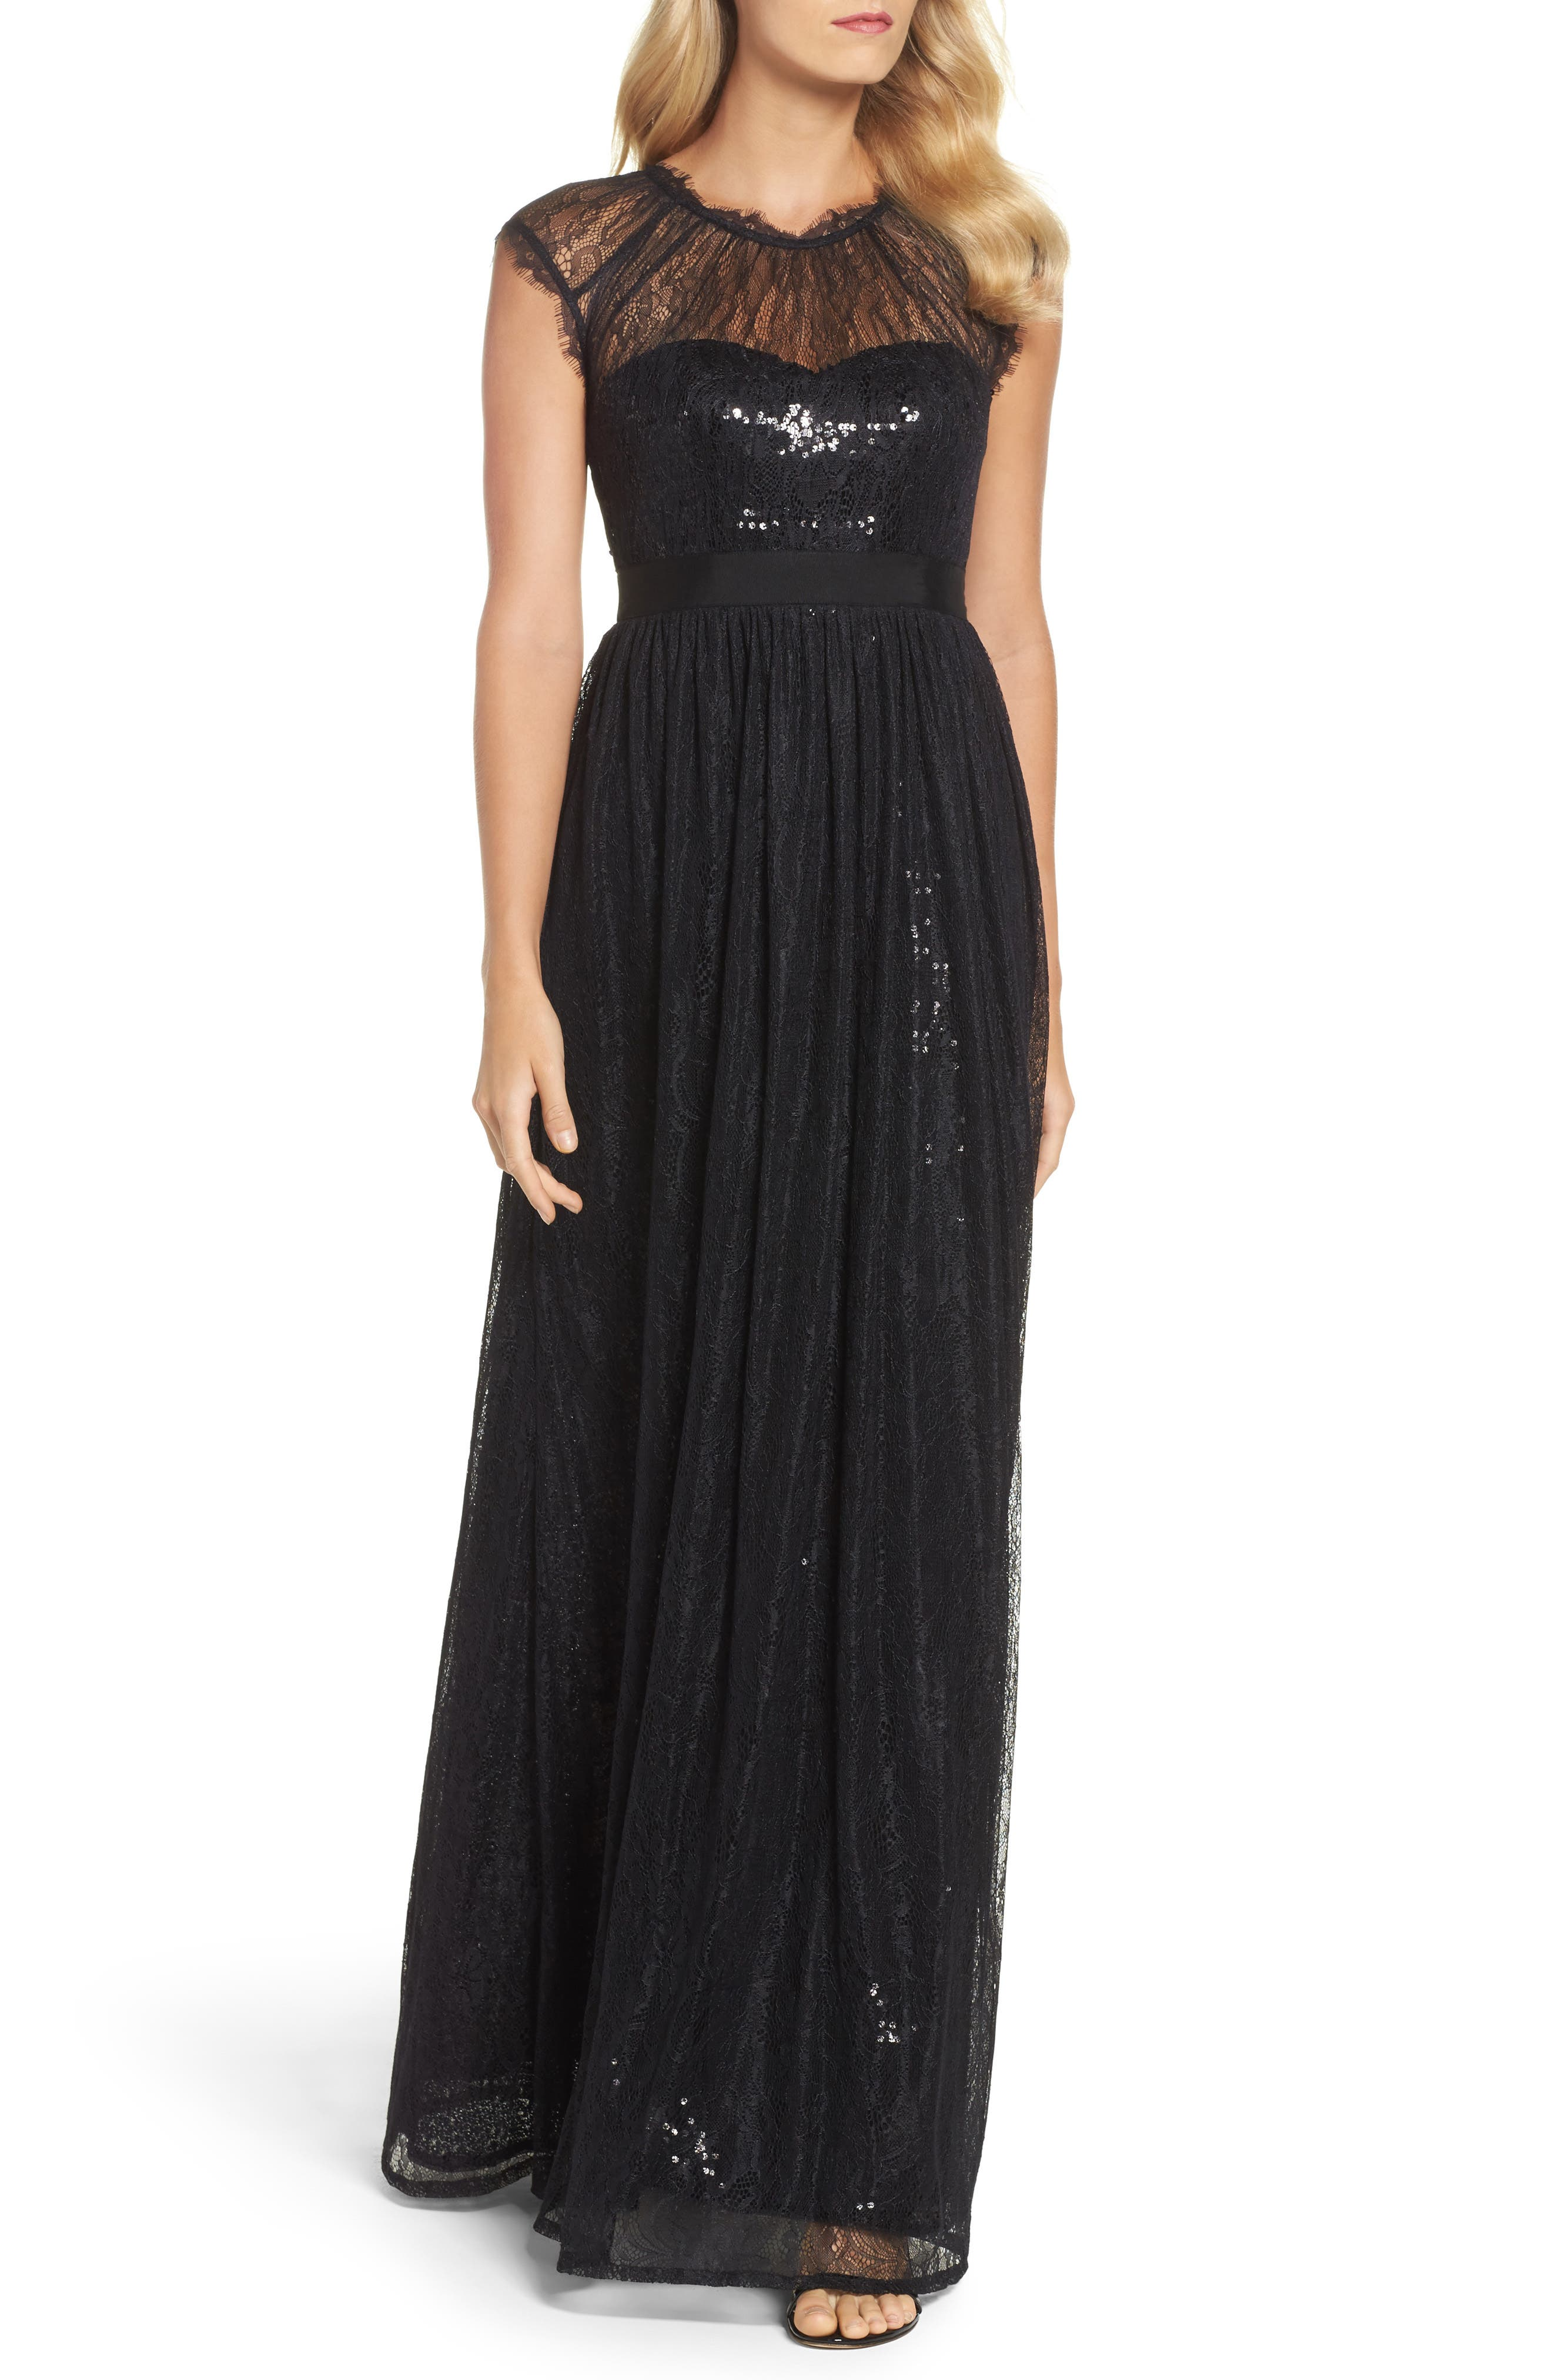 Main Image - Adrianna Papell Sequin Chantilly Lace Gown